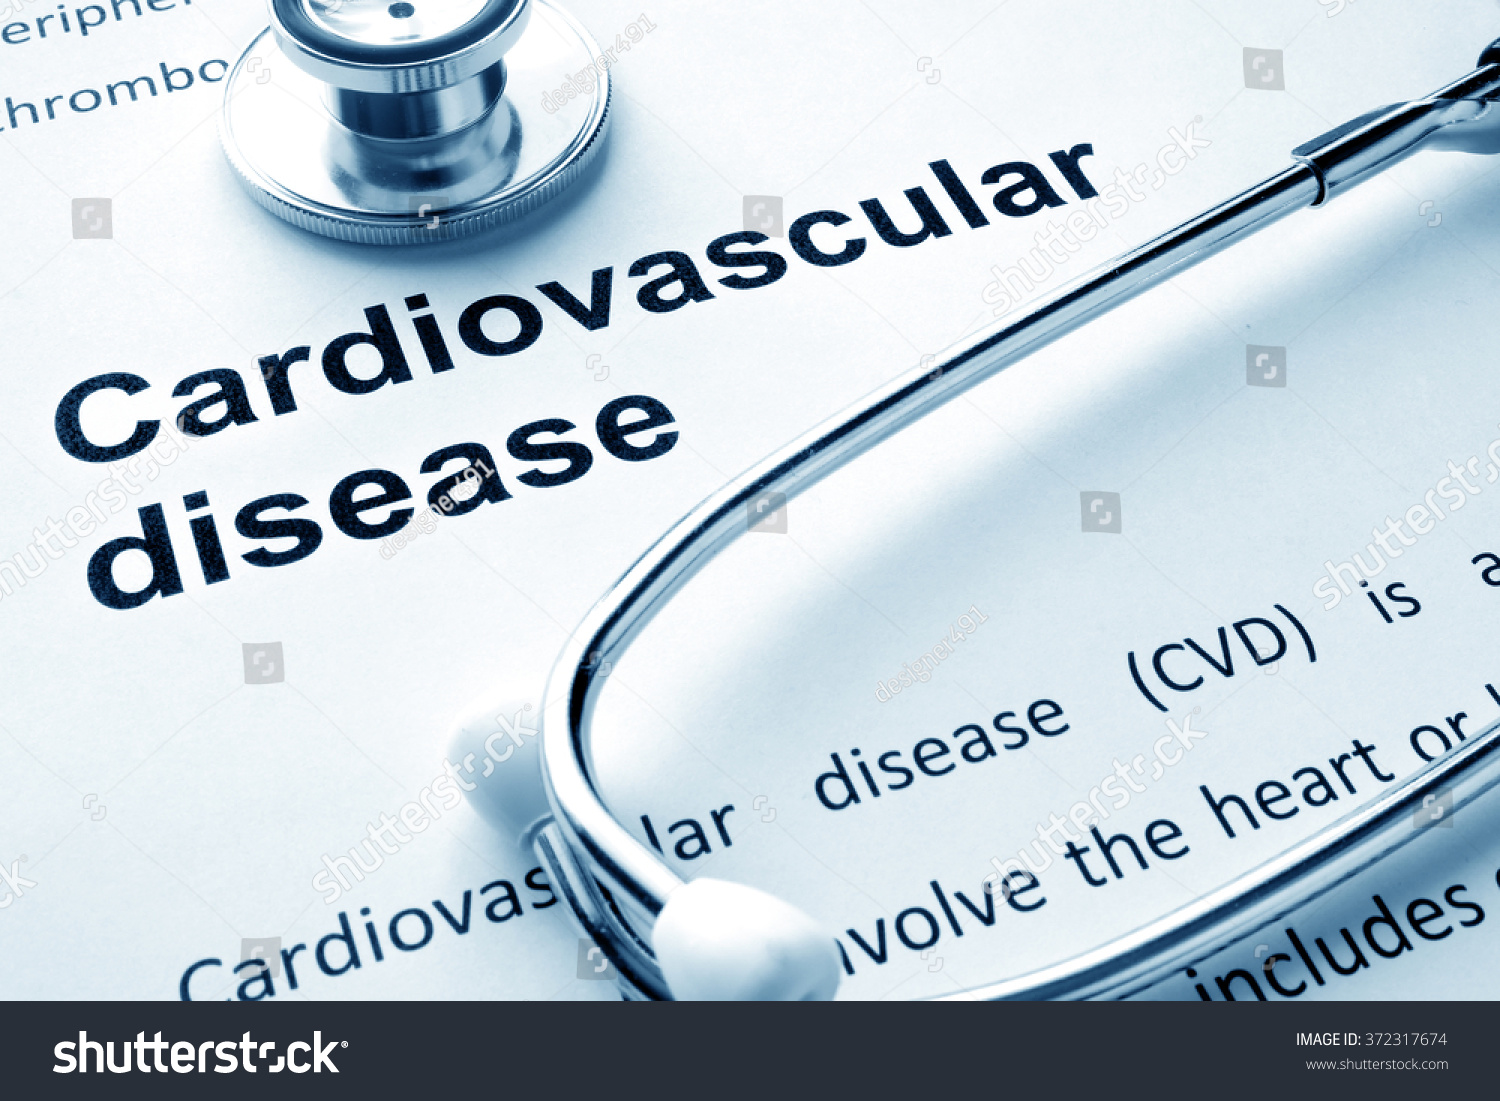 paper words cardiovascular diseases stethoscope stock photo (edit